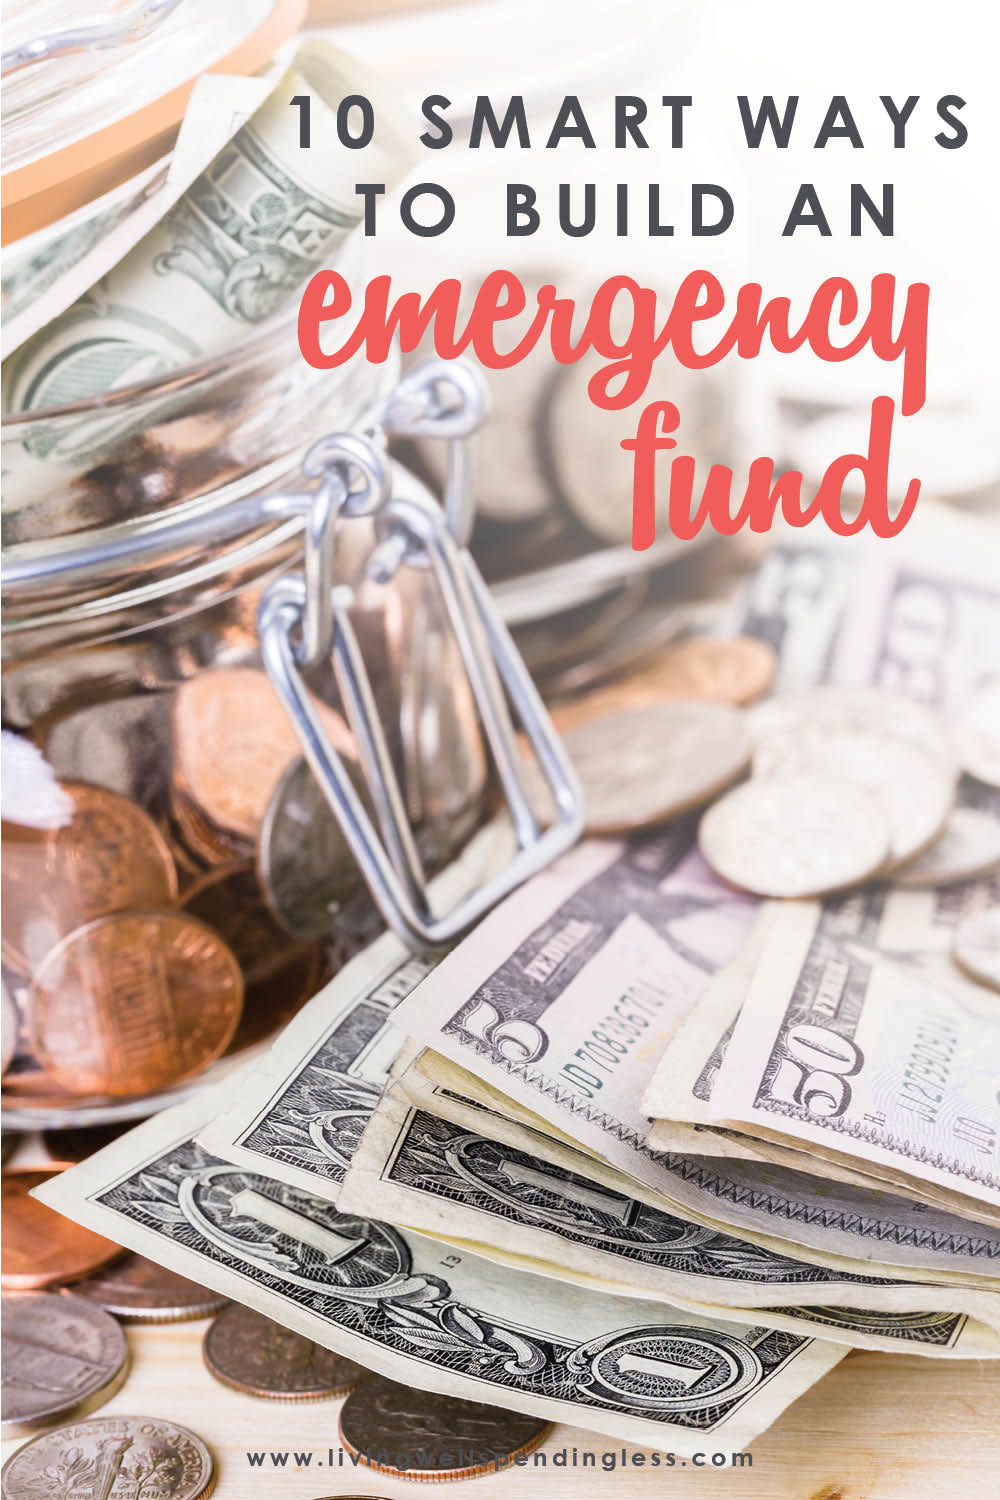 Want to save money or pay off debt, but aren't sure where to start? Don't miss these 10 super smart and easy ways to build up your emergency fund fast! #emergencyfund #savemoney #savingsfund #money